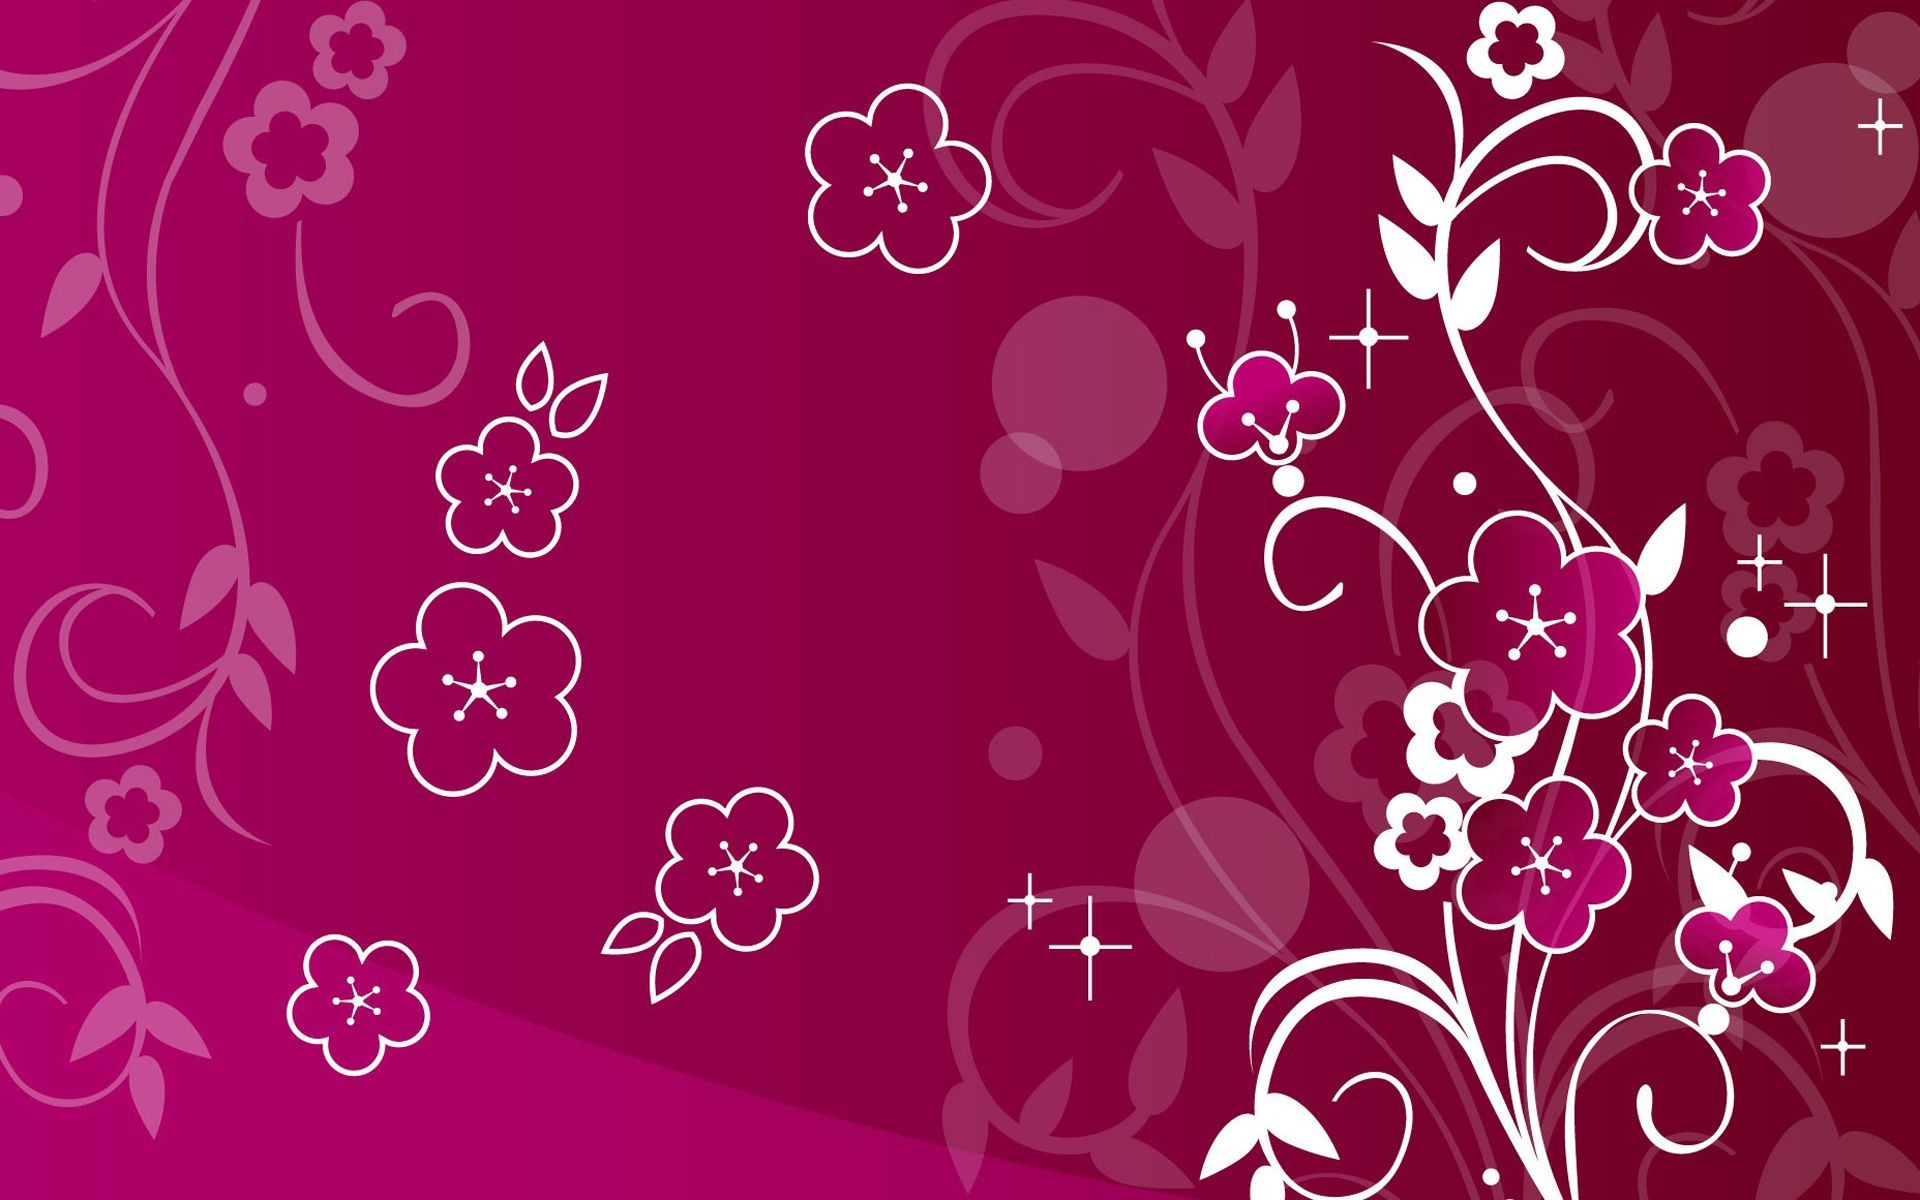 Res: 1920x1200, Wallpaper-flower-background-Gallery-(79-Plus)-PIC-WPW101433